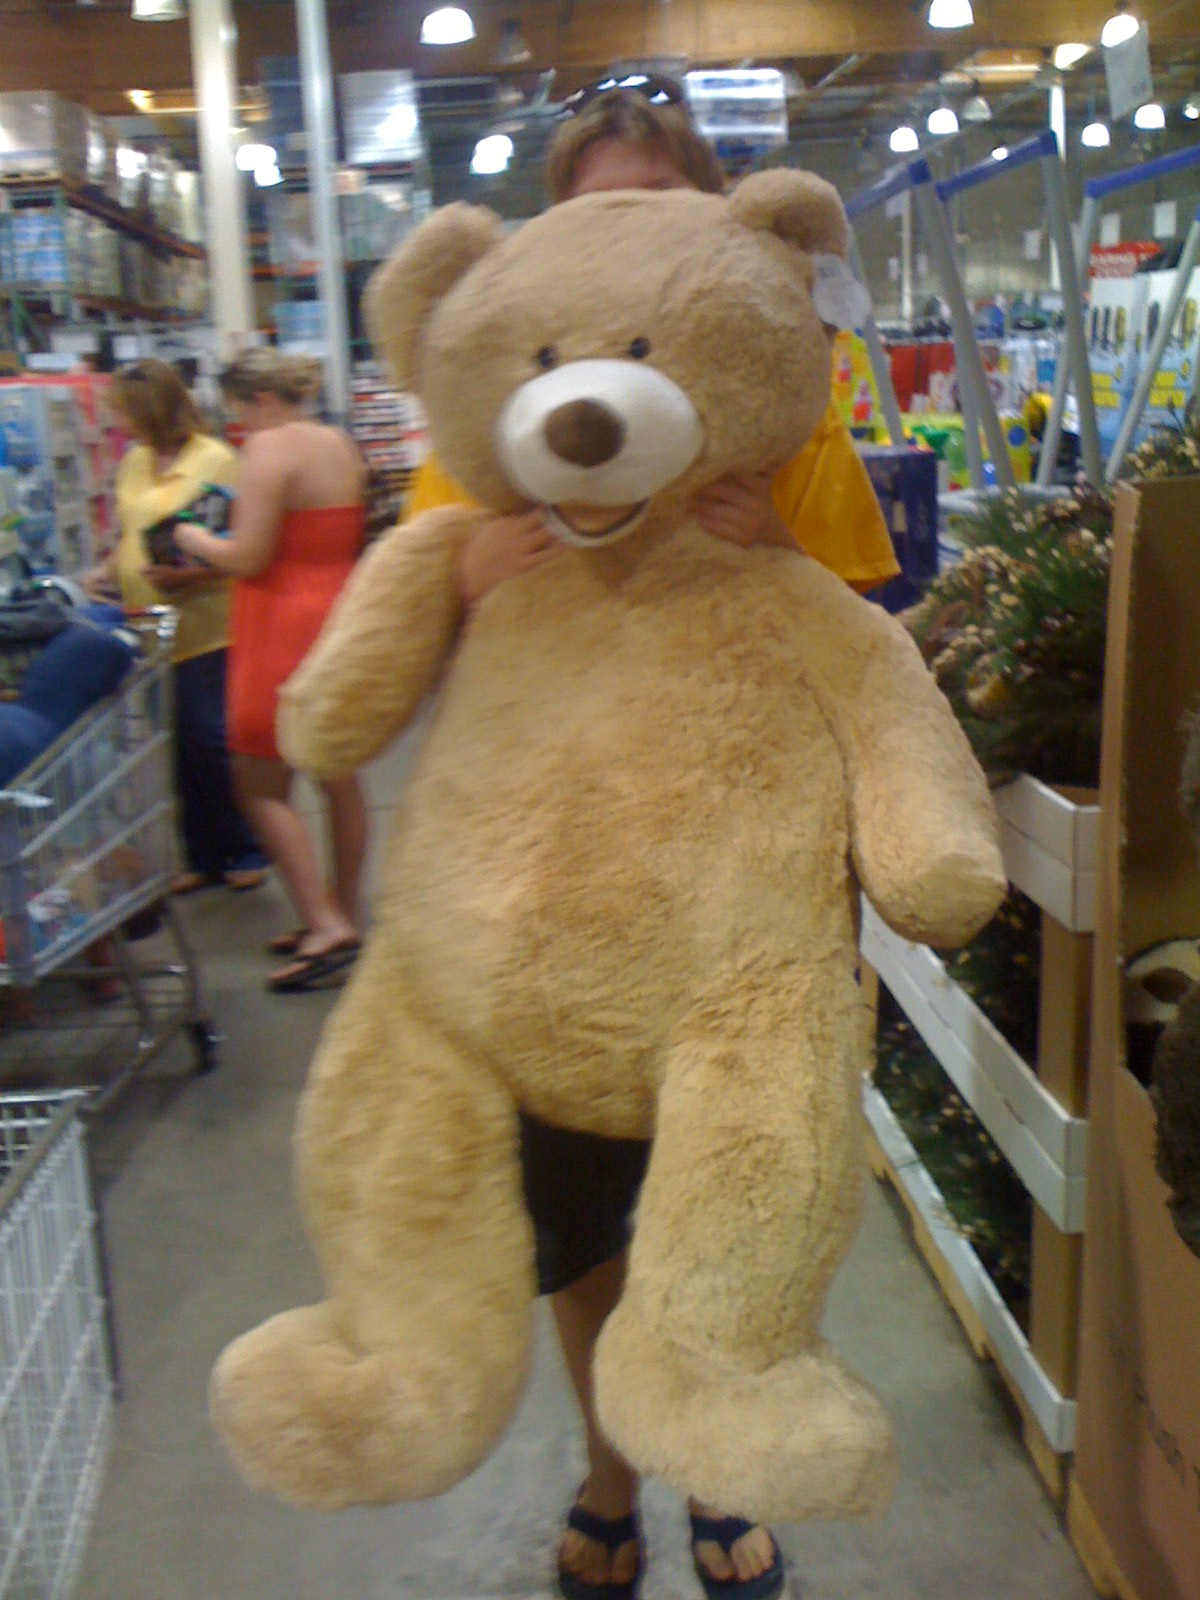 Giant Teddy Bear By Mikedw96 On DeviantArt